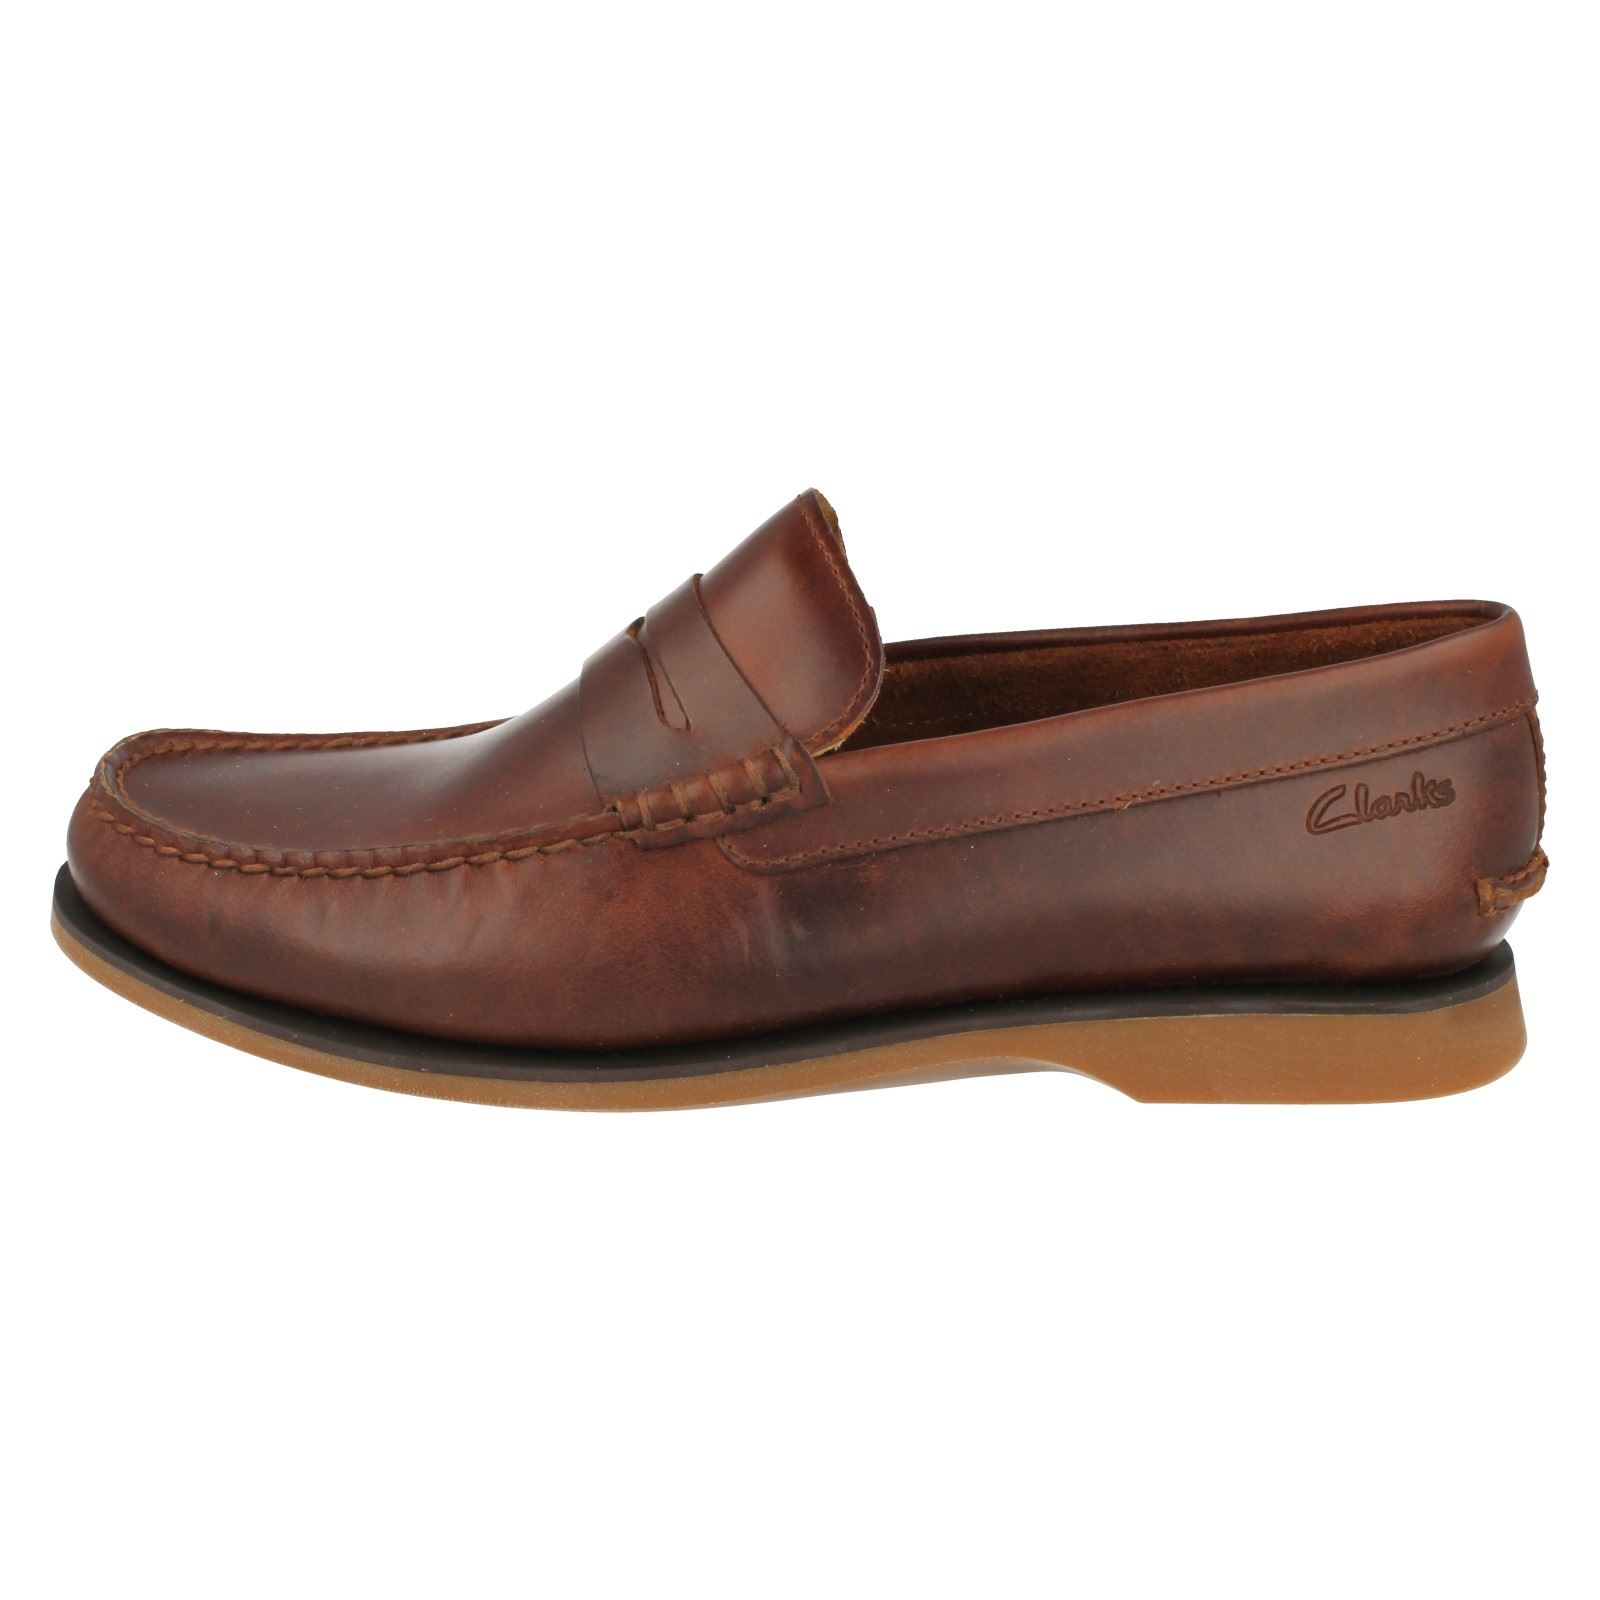 4b1ab6268e0 Anatomic Shoes - Tavares Mens Casual Loafer From Mozimo